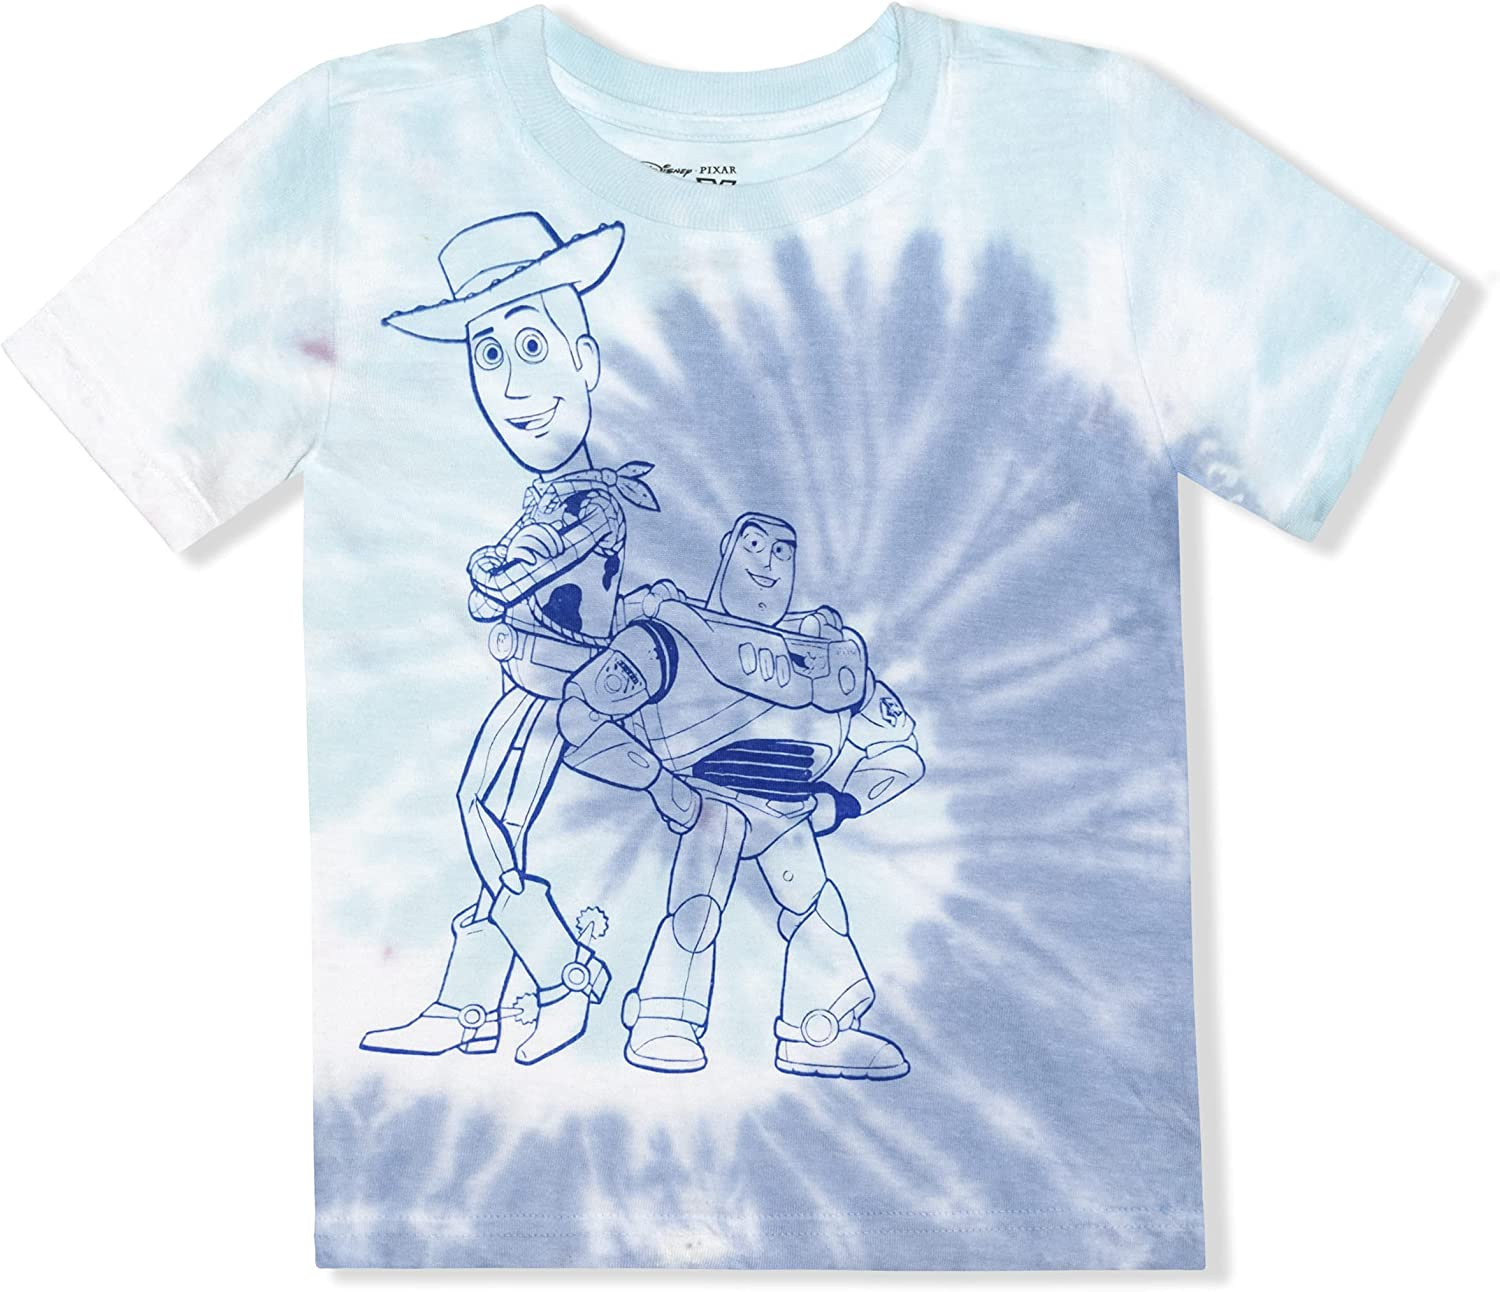 Disney Toy Story Short Sleeve Tee Shirt for Kids, Crewneck Tie Dye Top for Boys and Girls